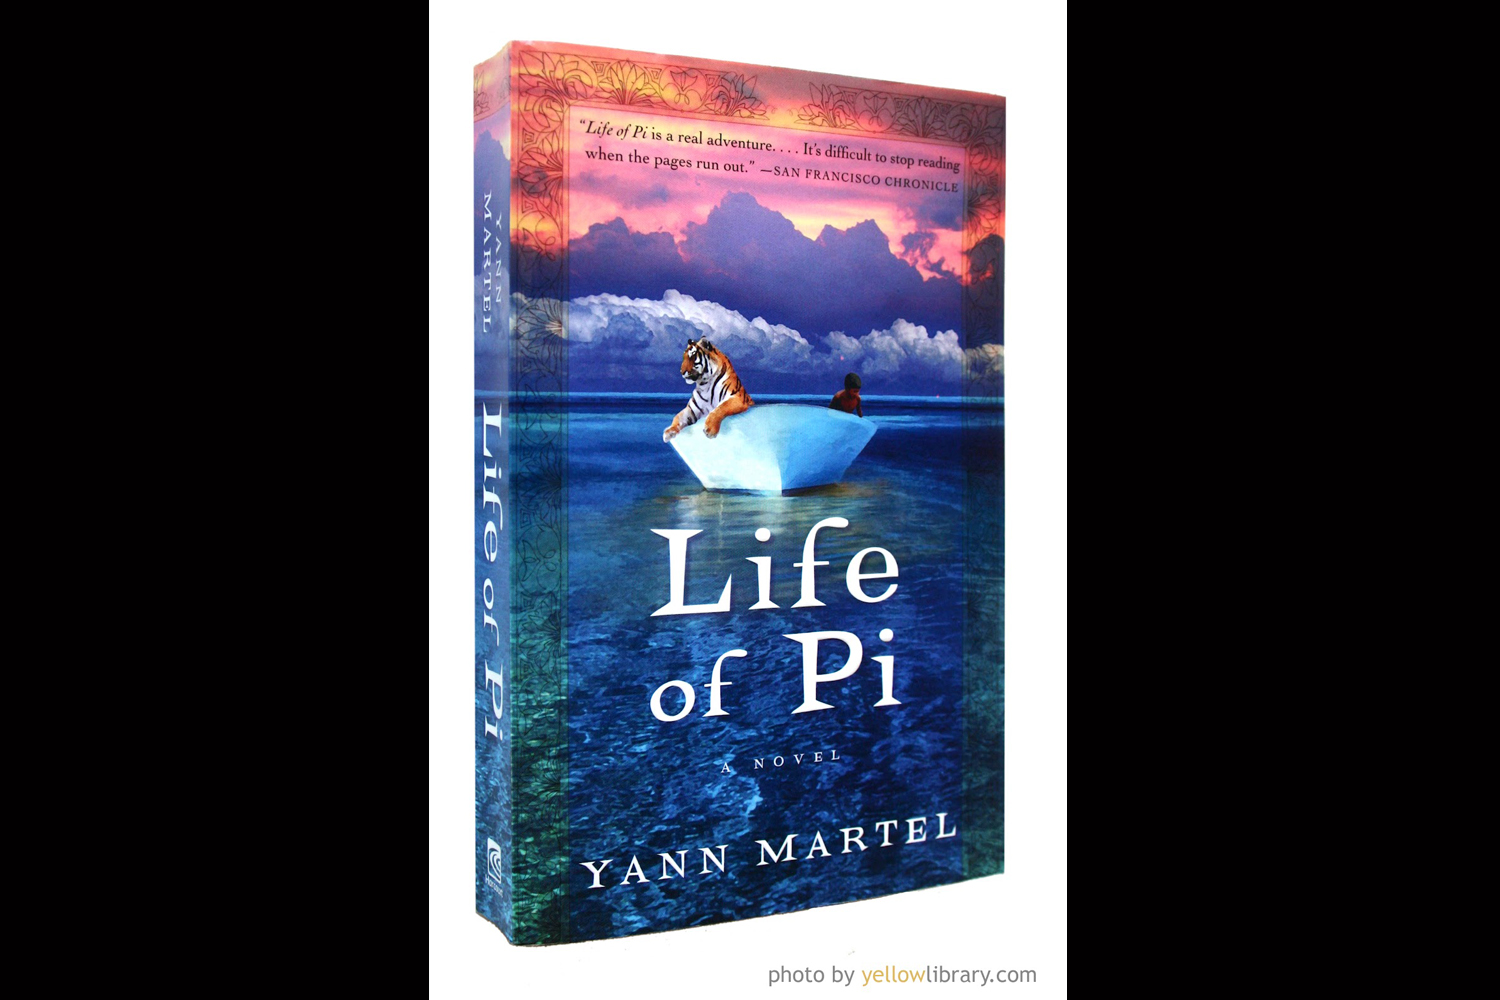 2 questions ang lee the big n picture life of pi book cover c yellowlibrary com